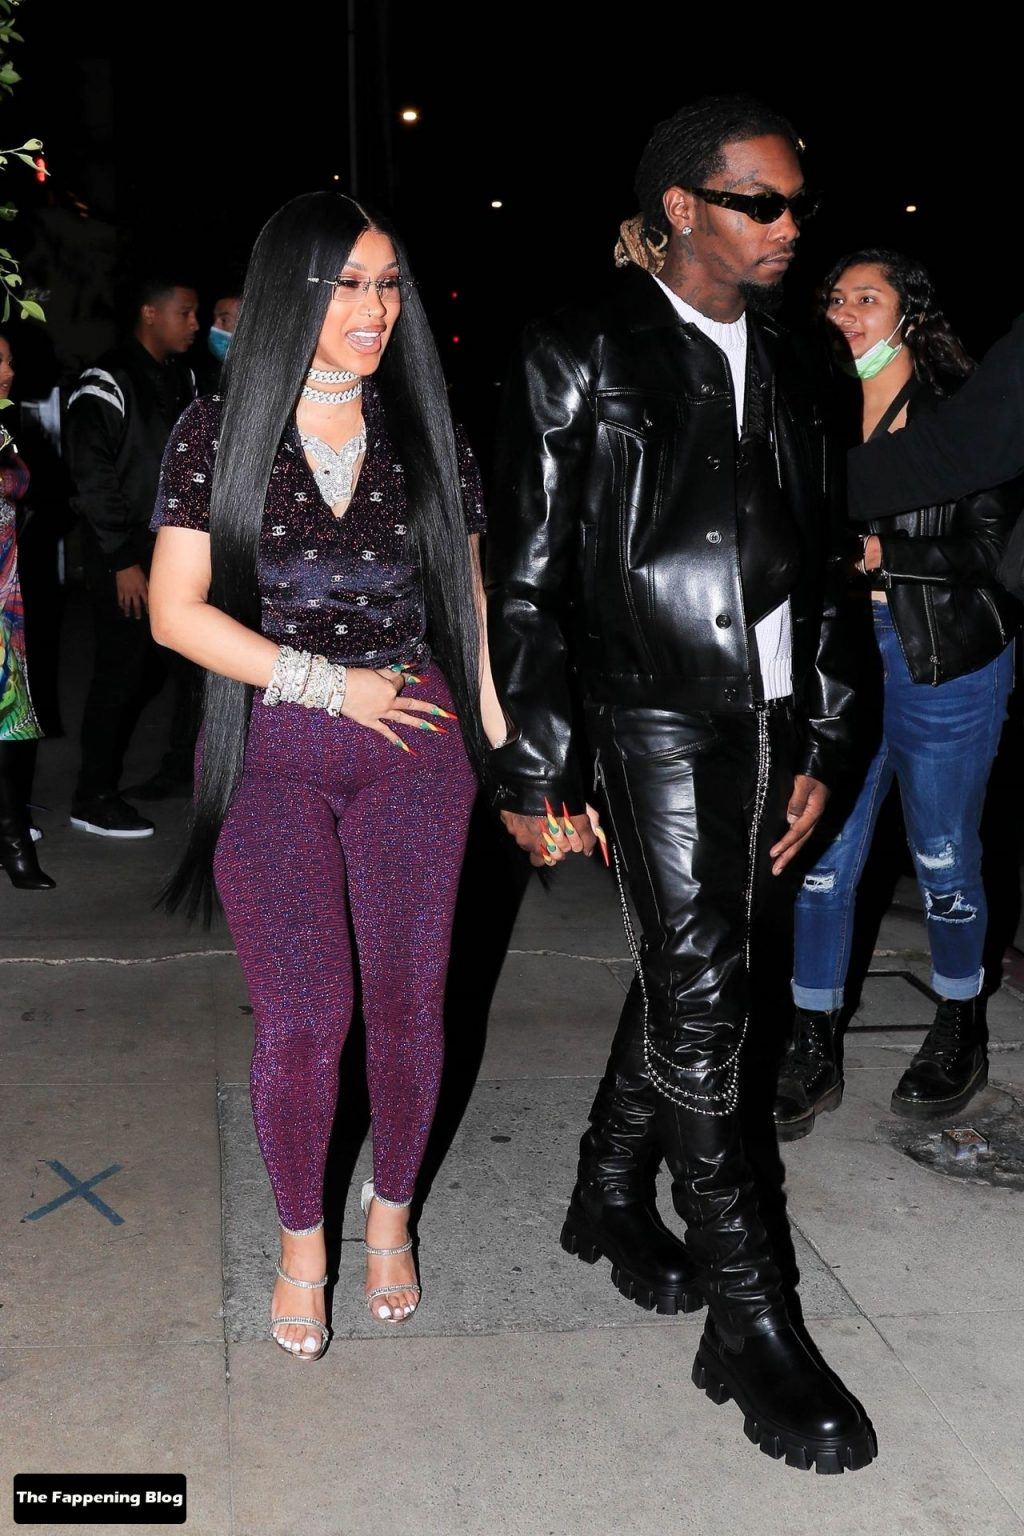 Cardi B Steps Out in Style as She Celebrates Her 29th Birthday With Offset (158 Photos)